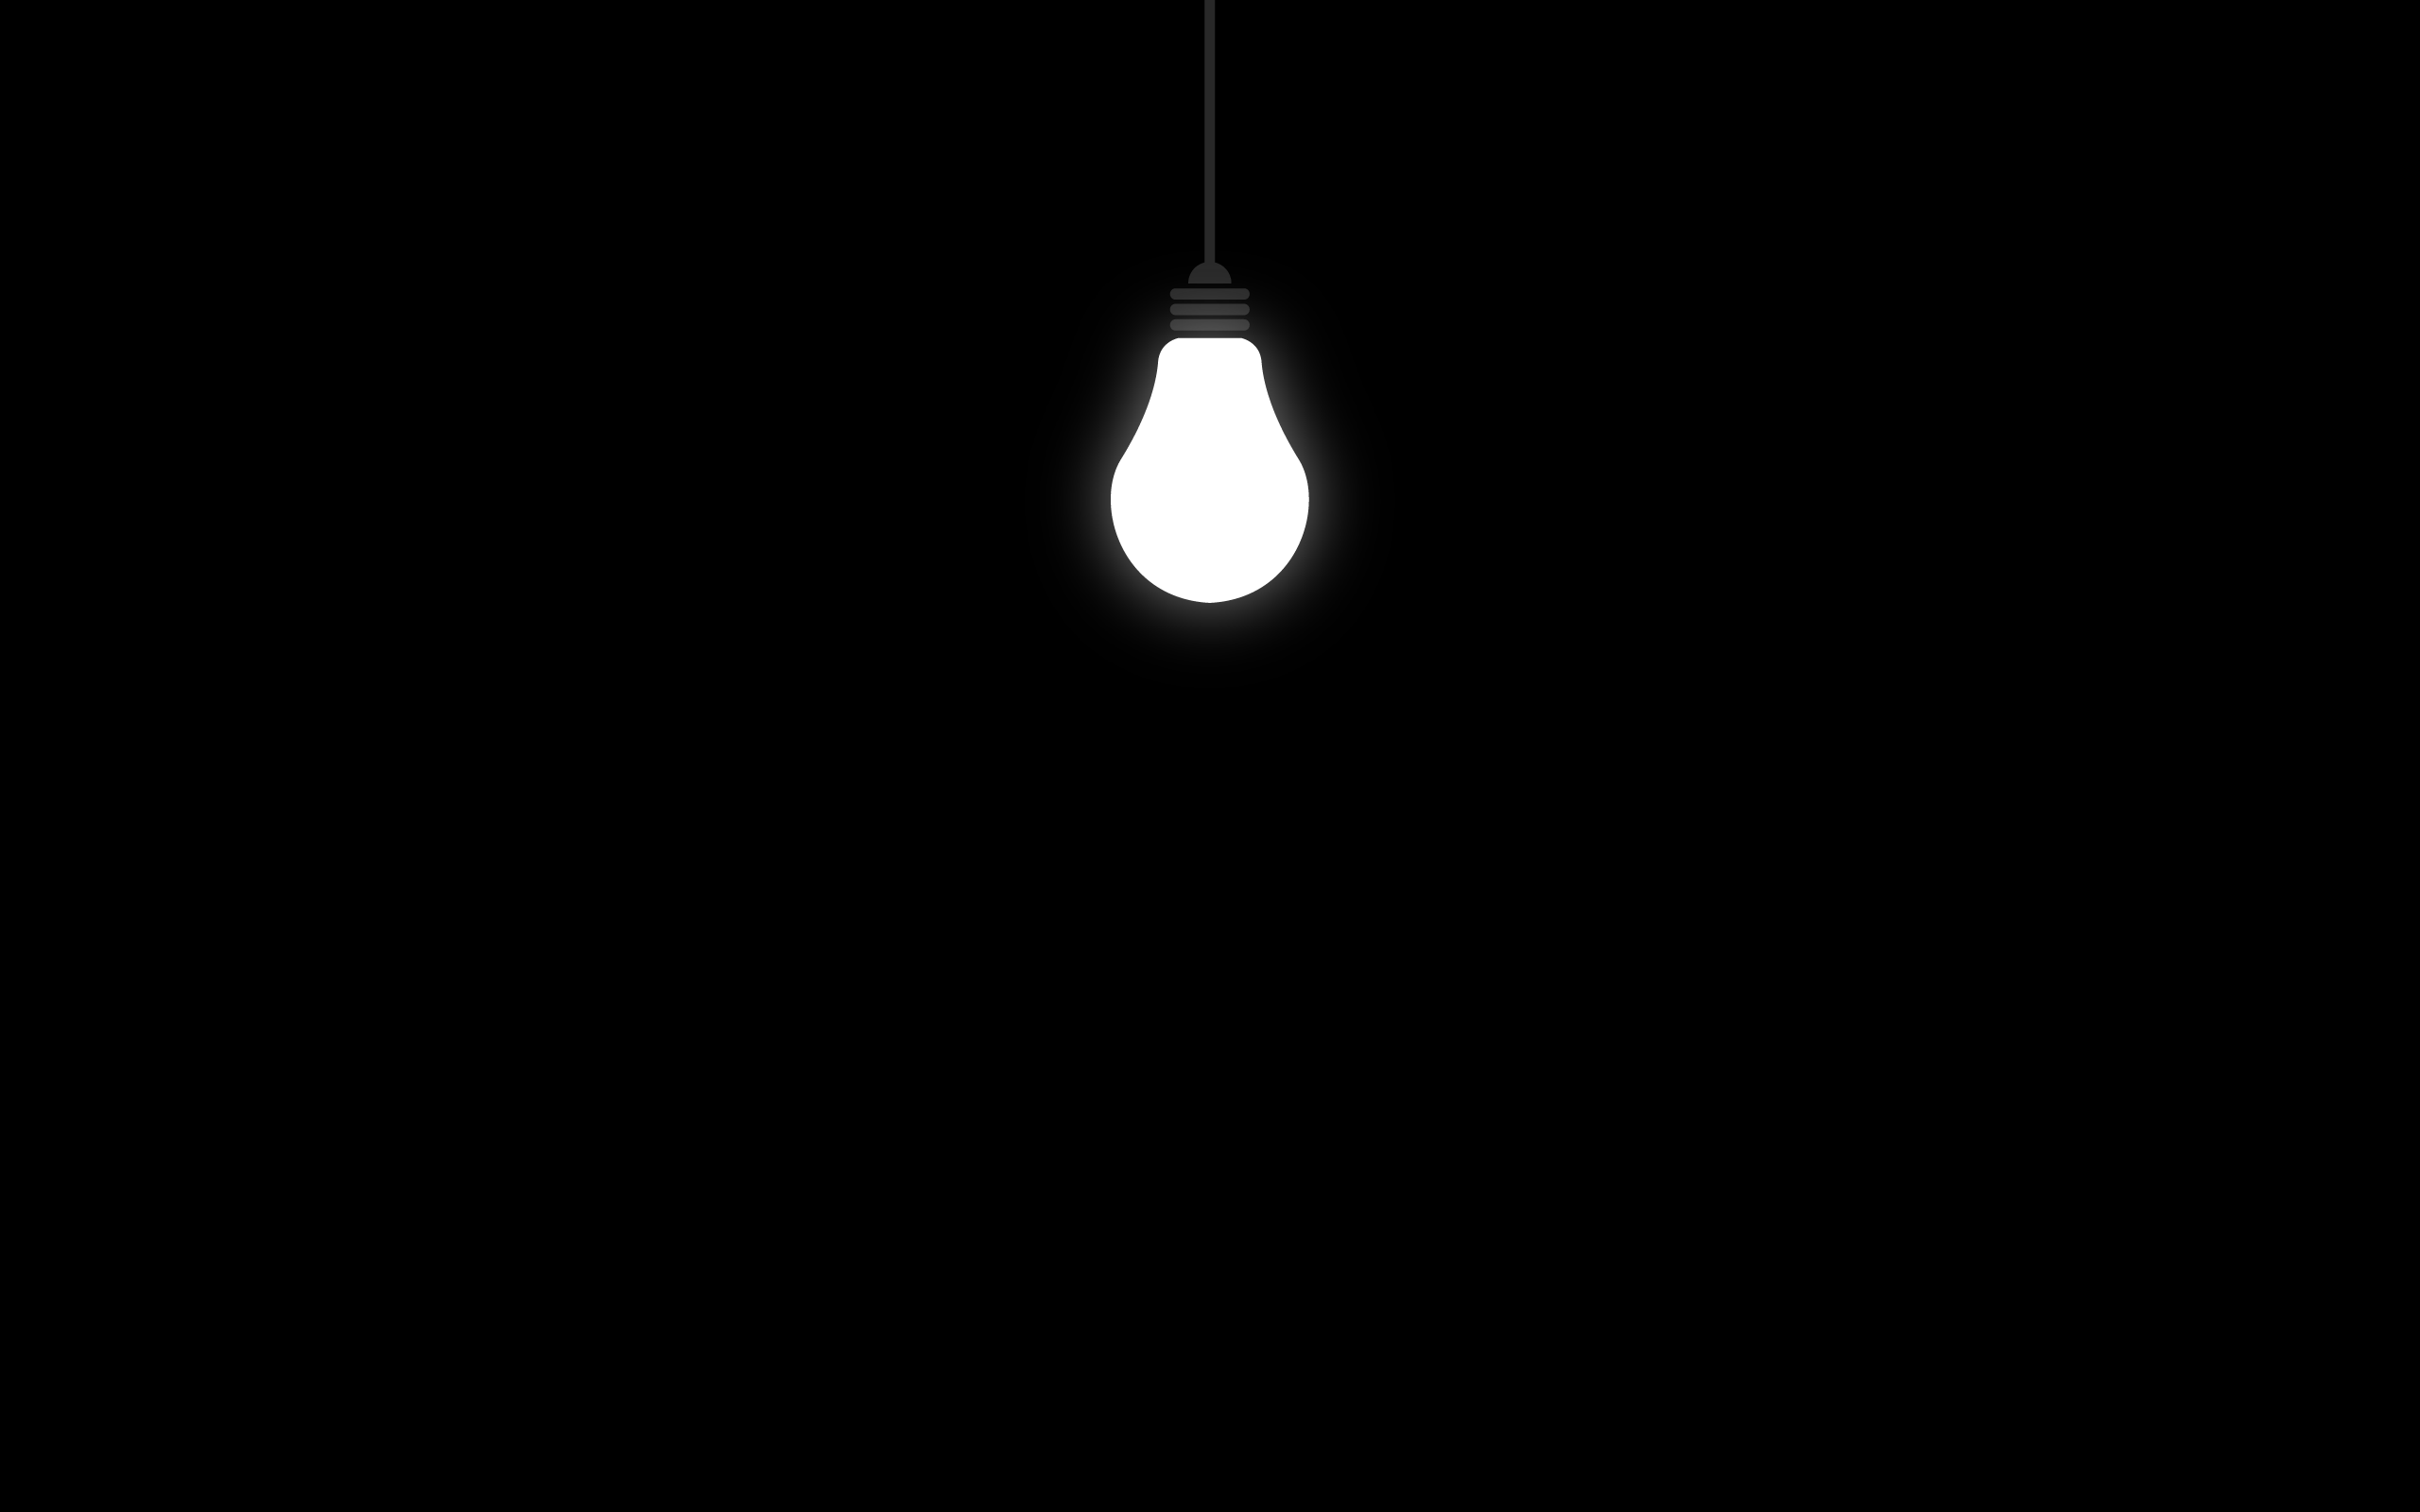 4442674 Black Wallpaper | Download for Free